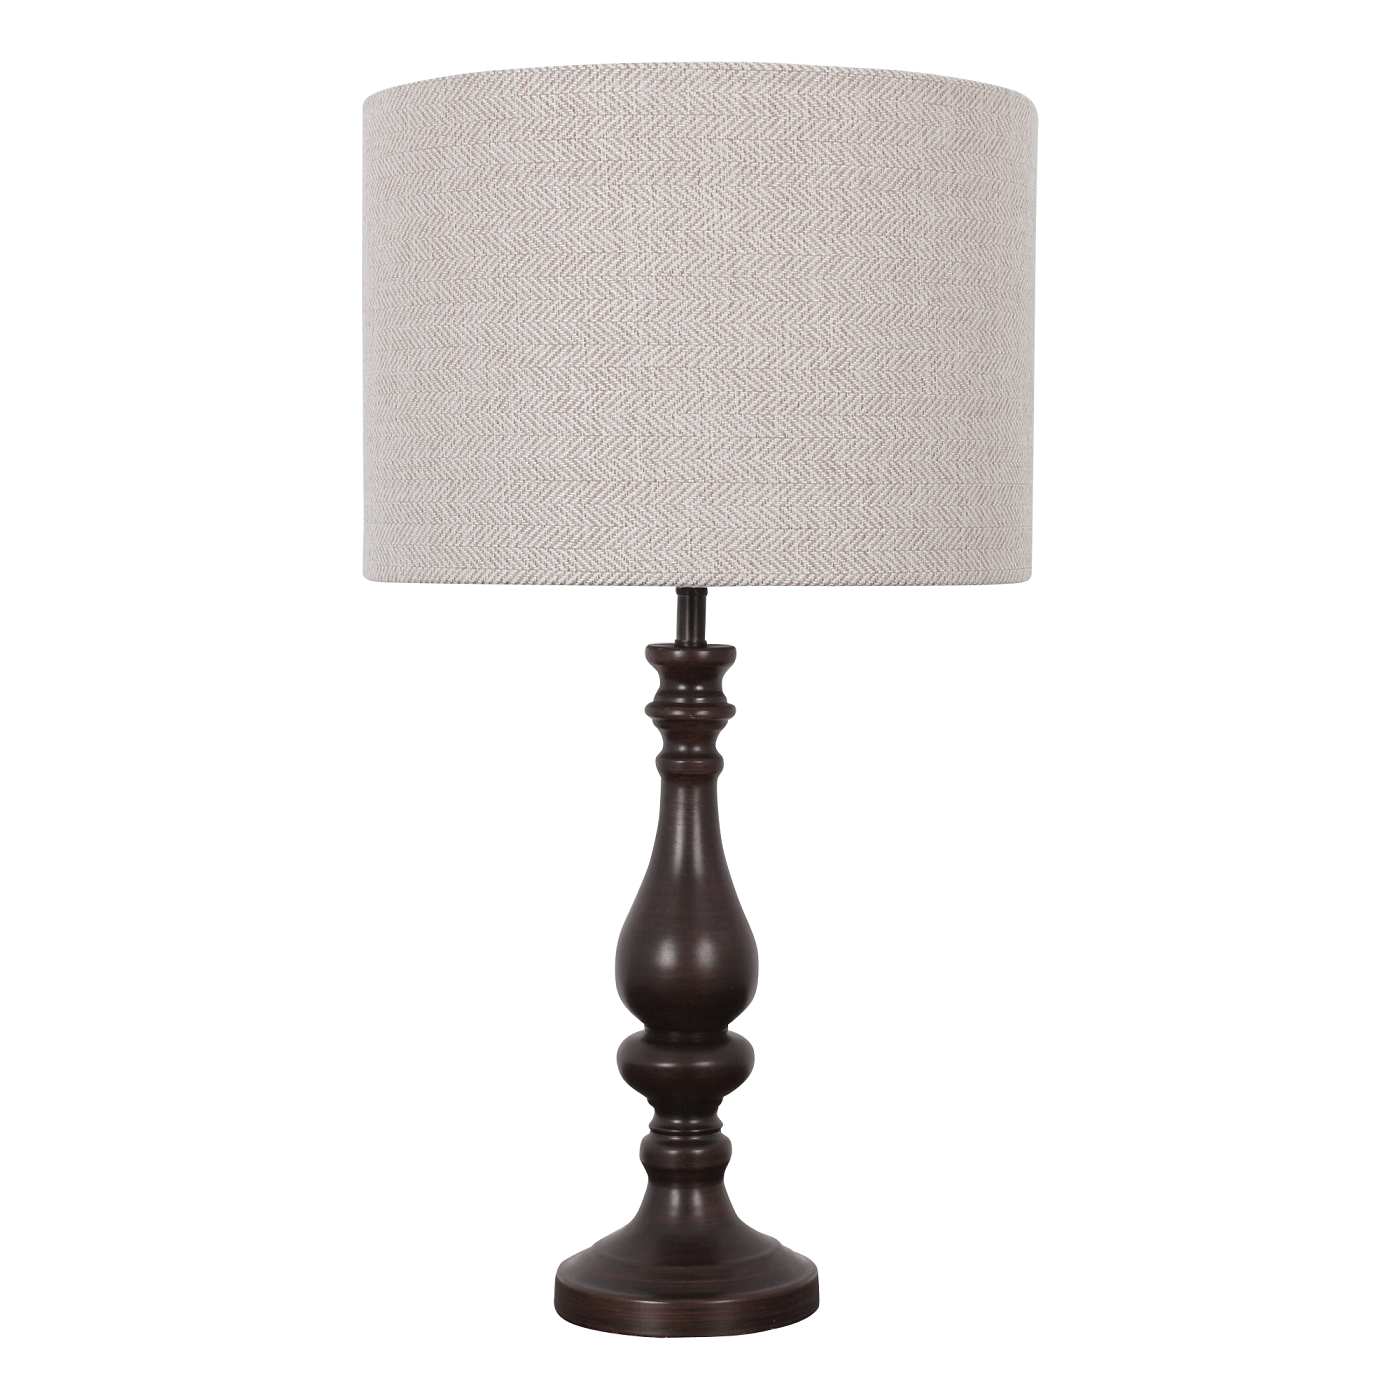 Tall Bedside Lamps Pair Of Tall Modern Dark Metal Table Lamps With